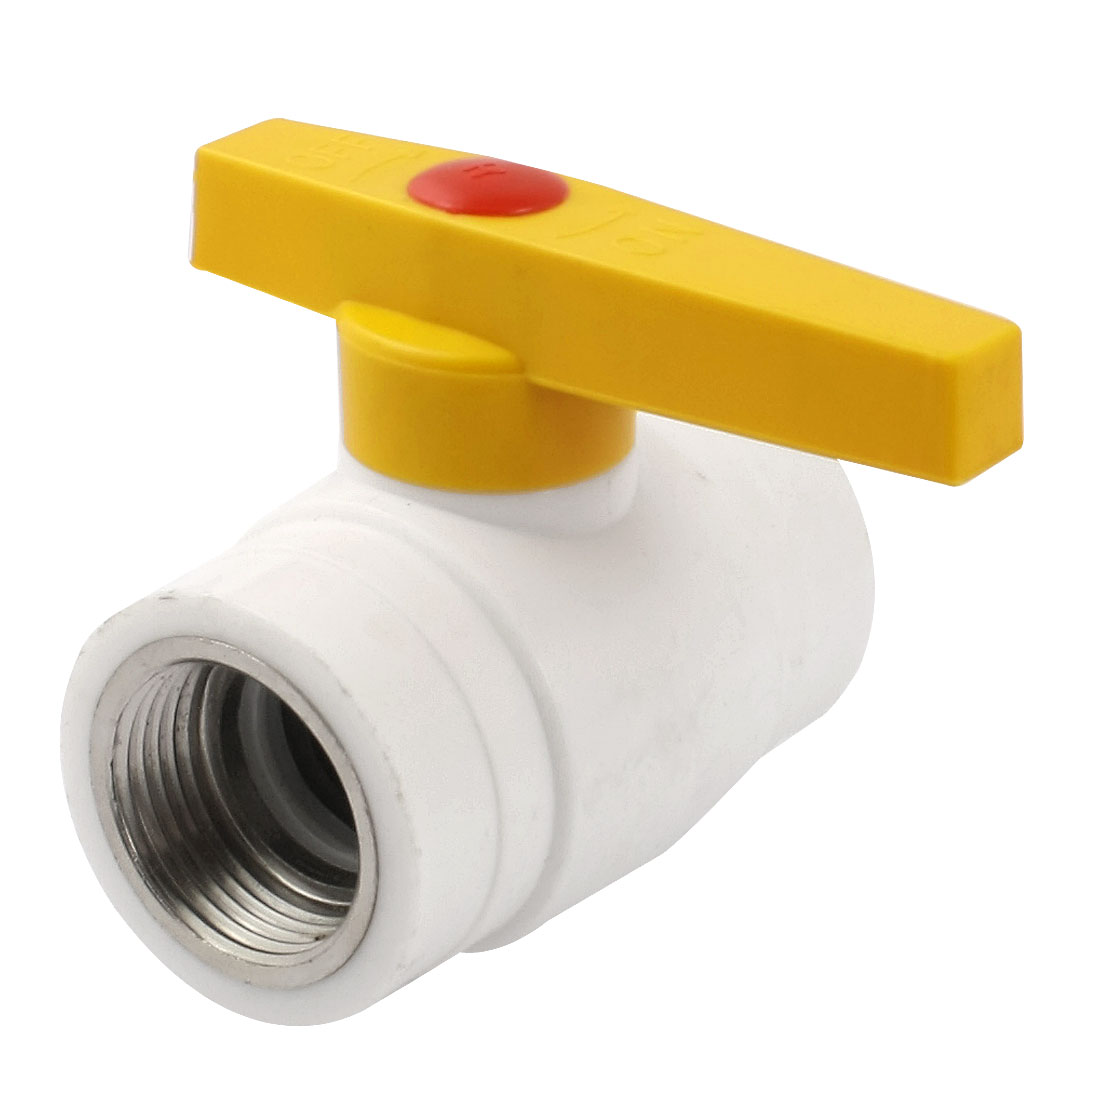 Water Supply 1/4 Turn 1PT Female Thread Dia PPR Ball Valve White Yellow